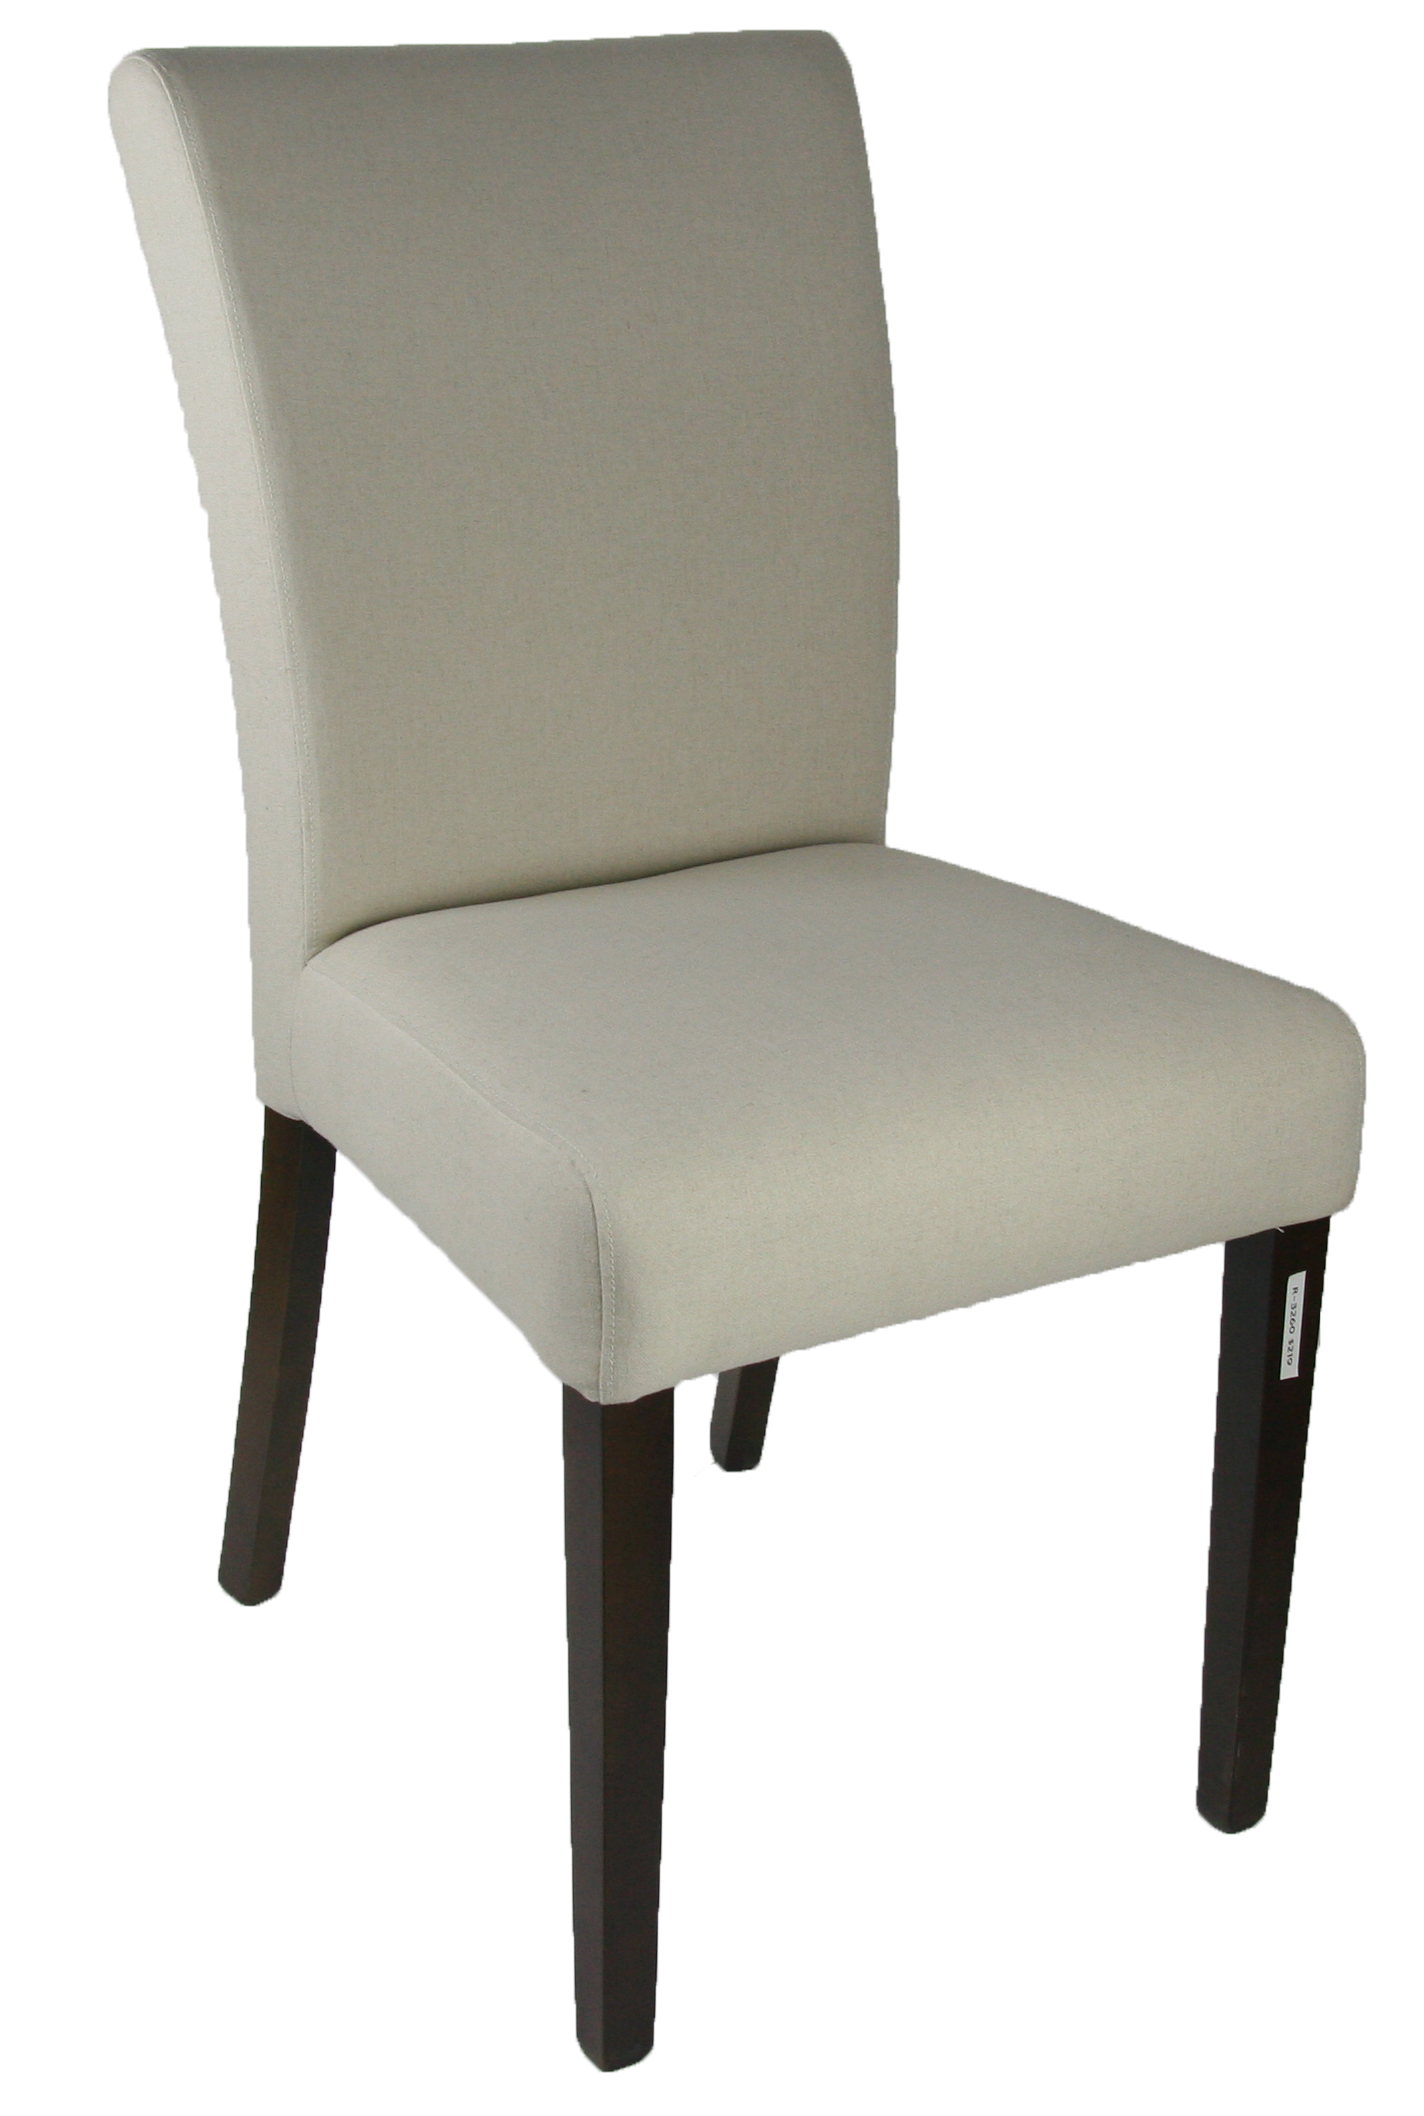 Clearance Cream Faux Leather Low Back Dining Room Chair